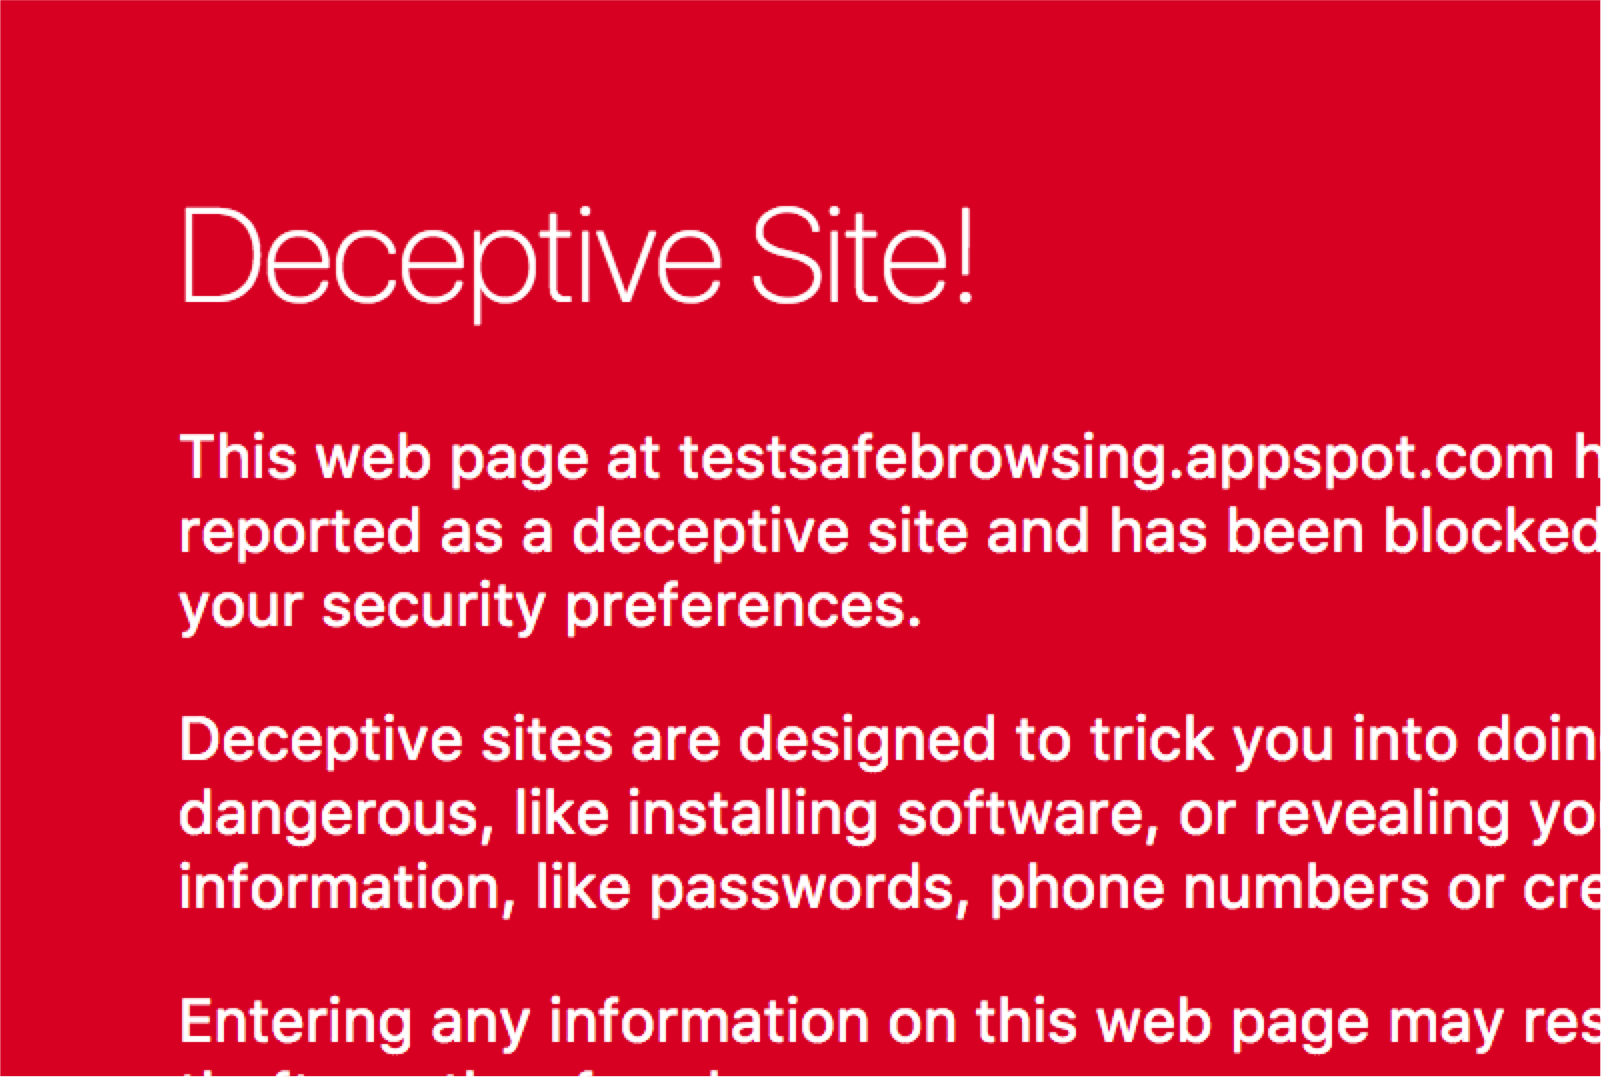 An indication of a deceptive website